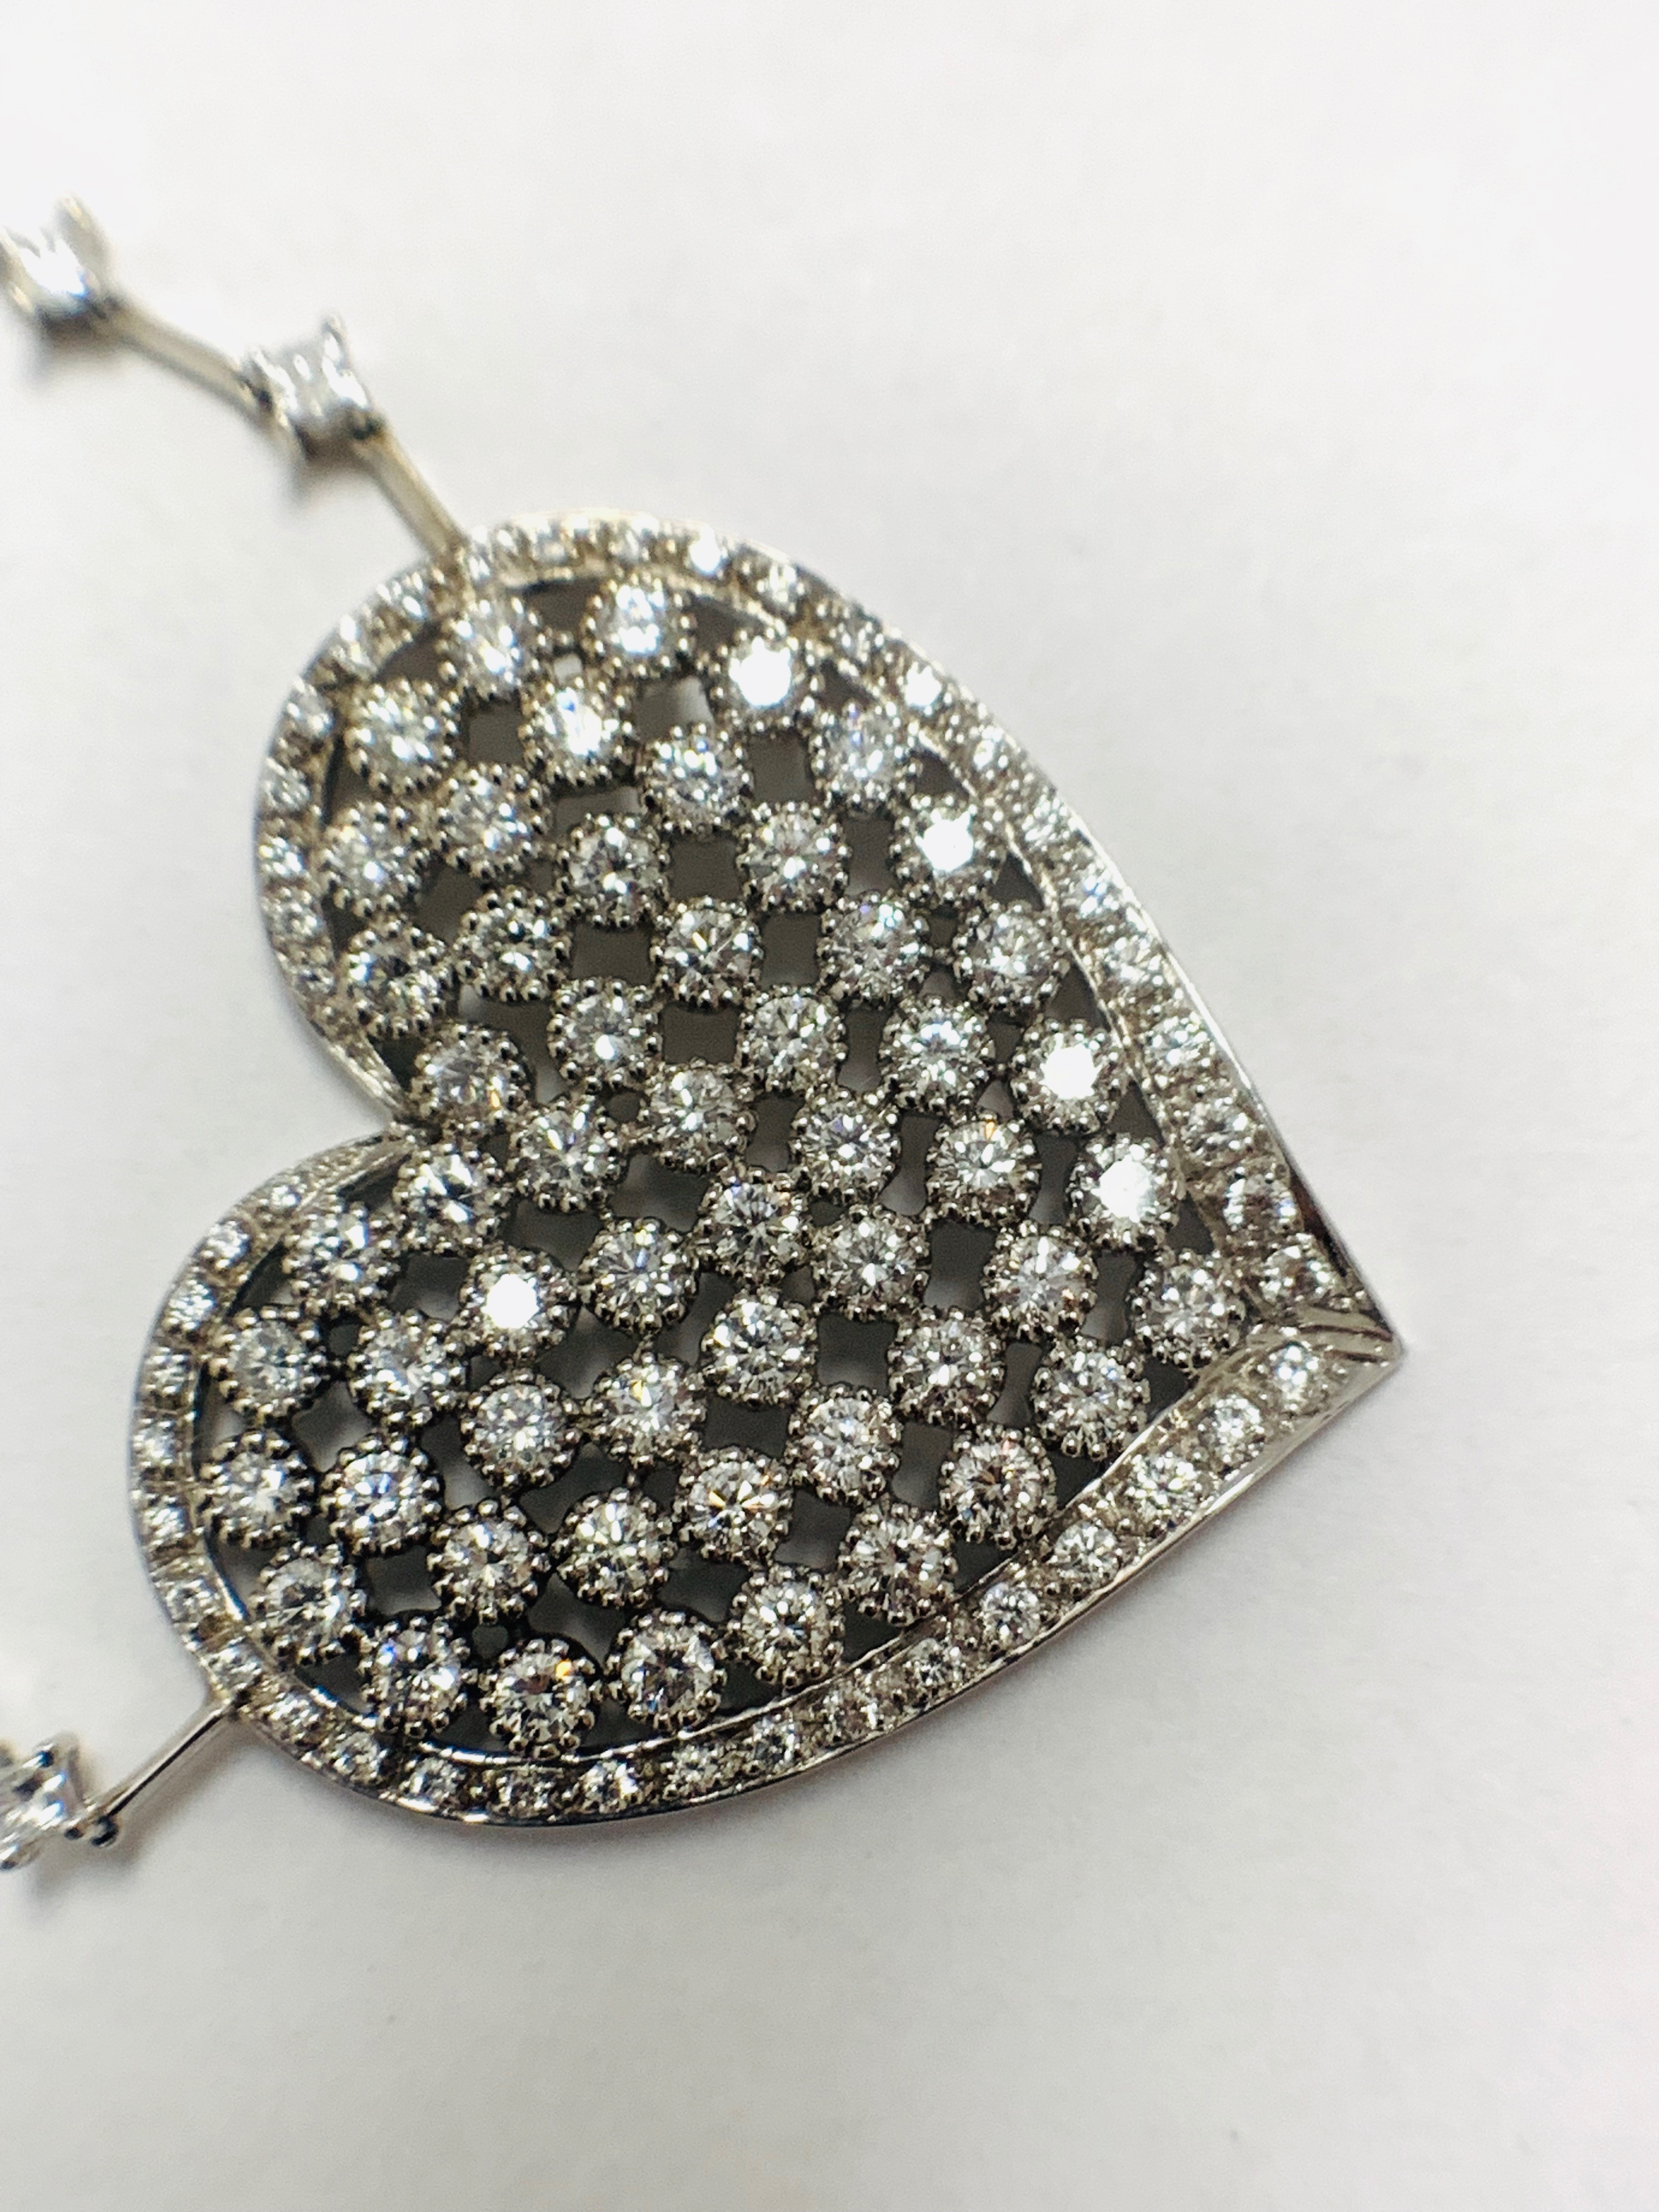 18ct White Gold Diamond heart necklace - Image 6 of 12